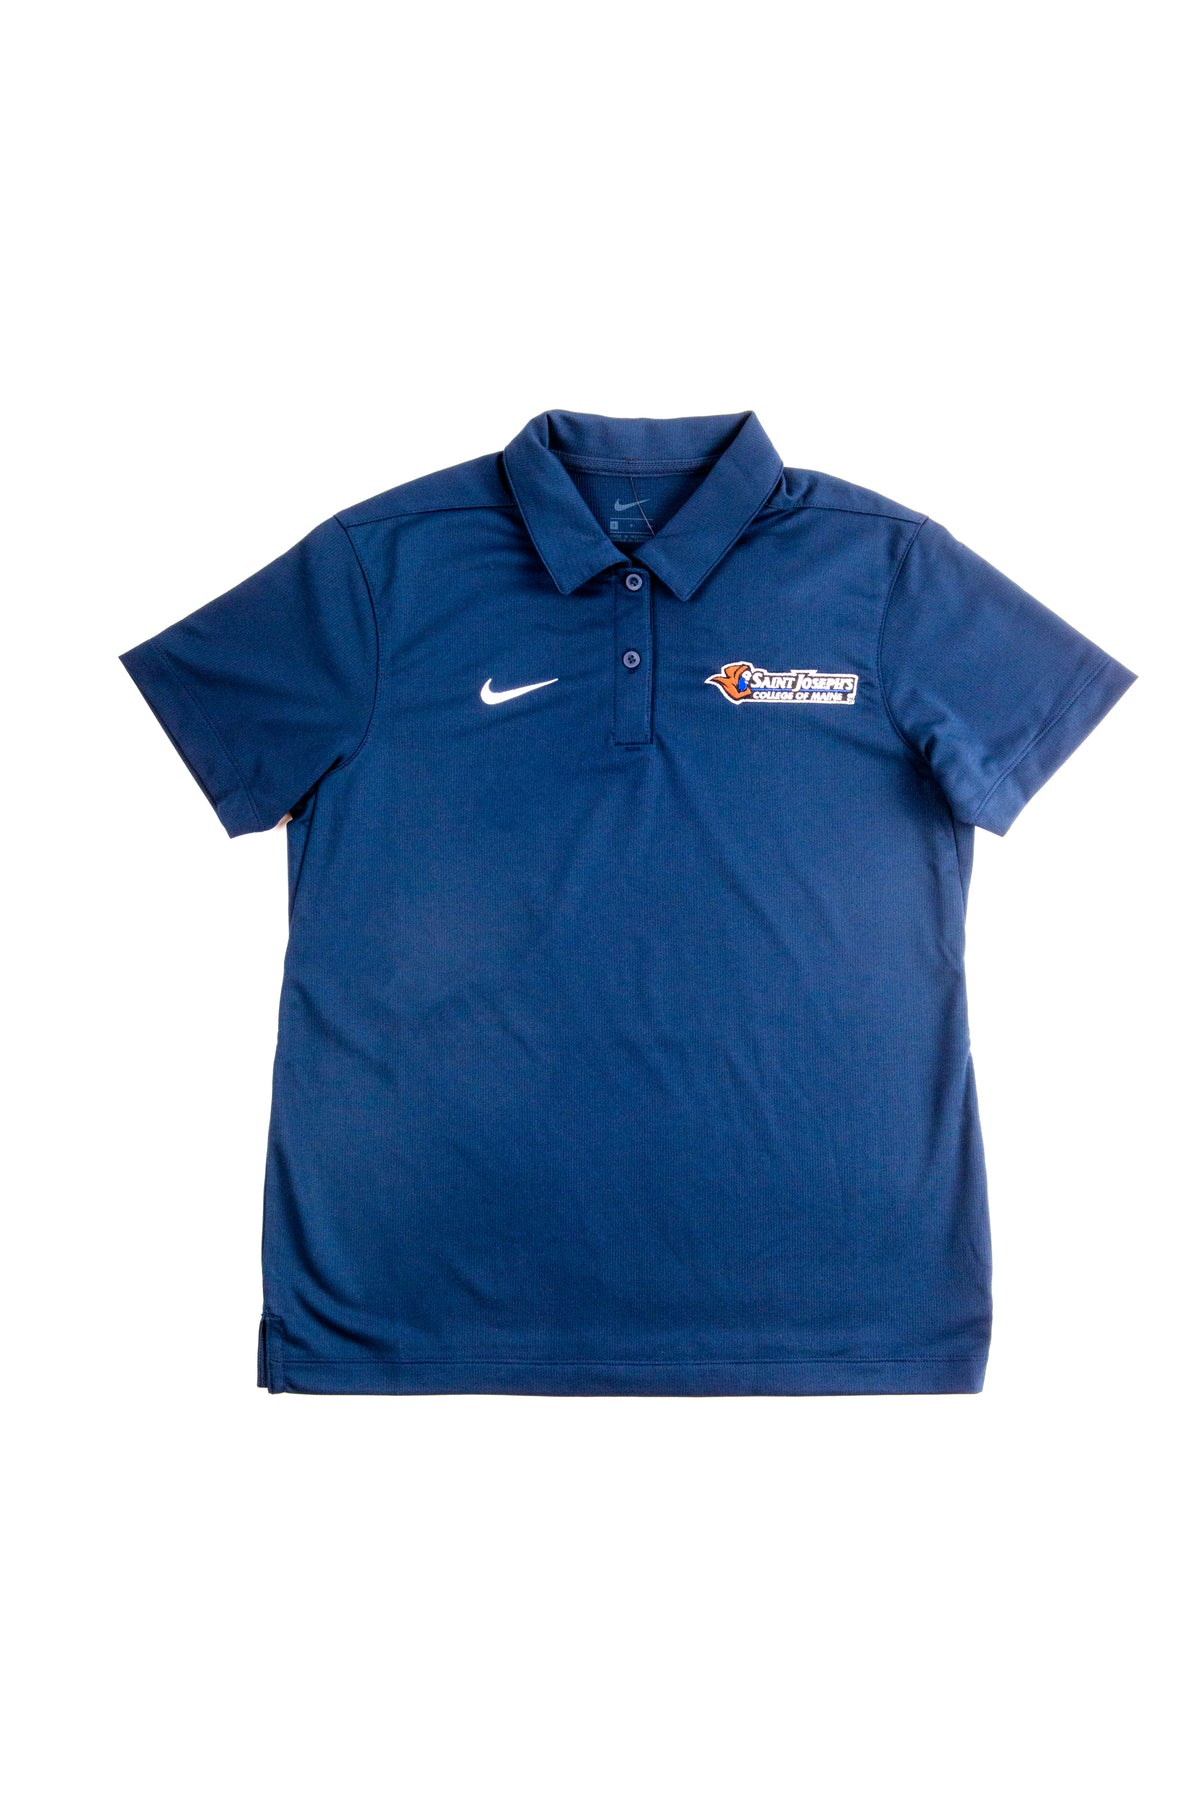 Women's Nike Polo With Logo